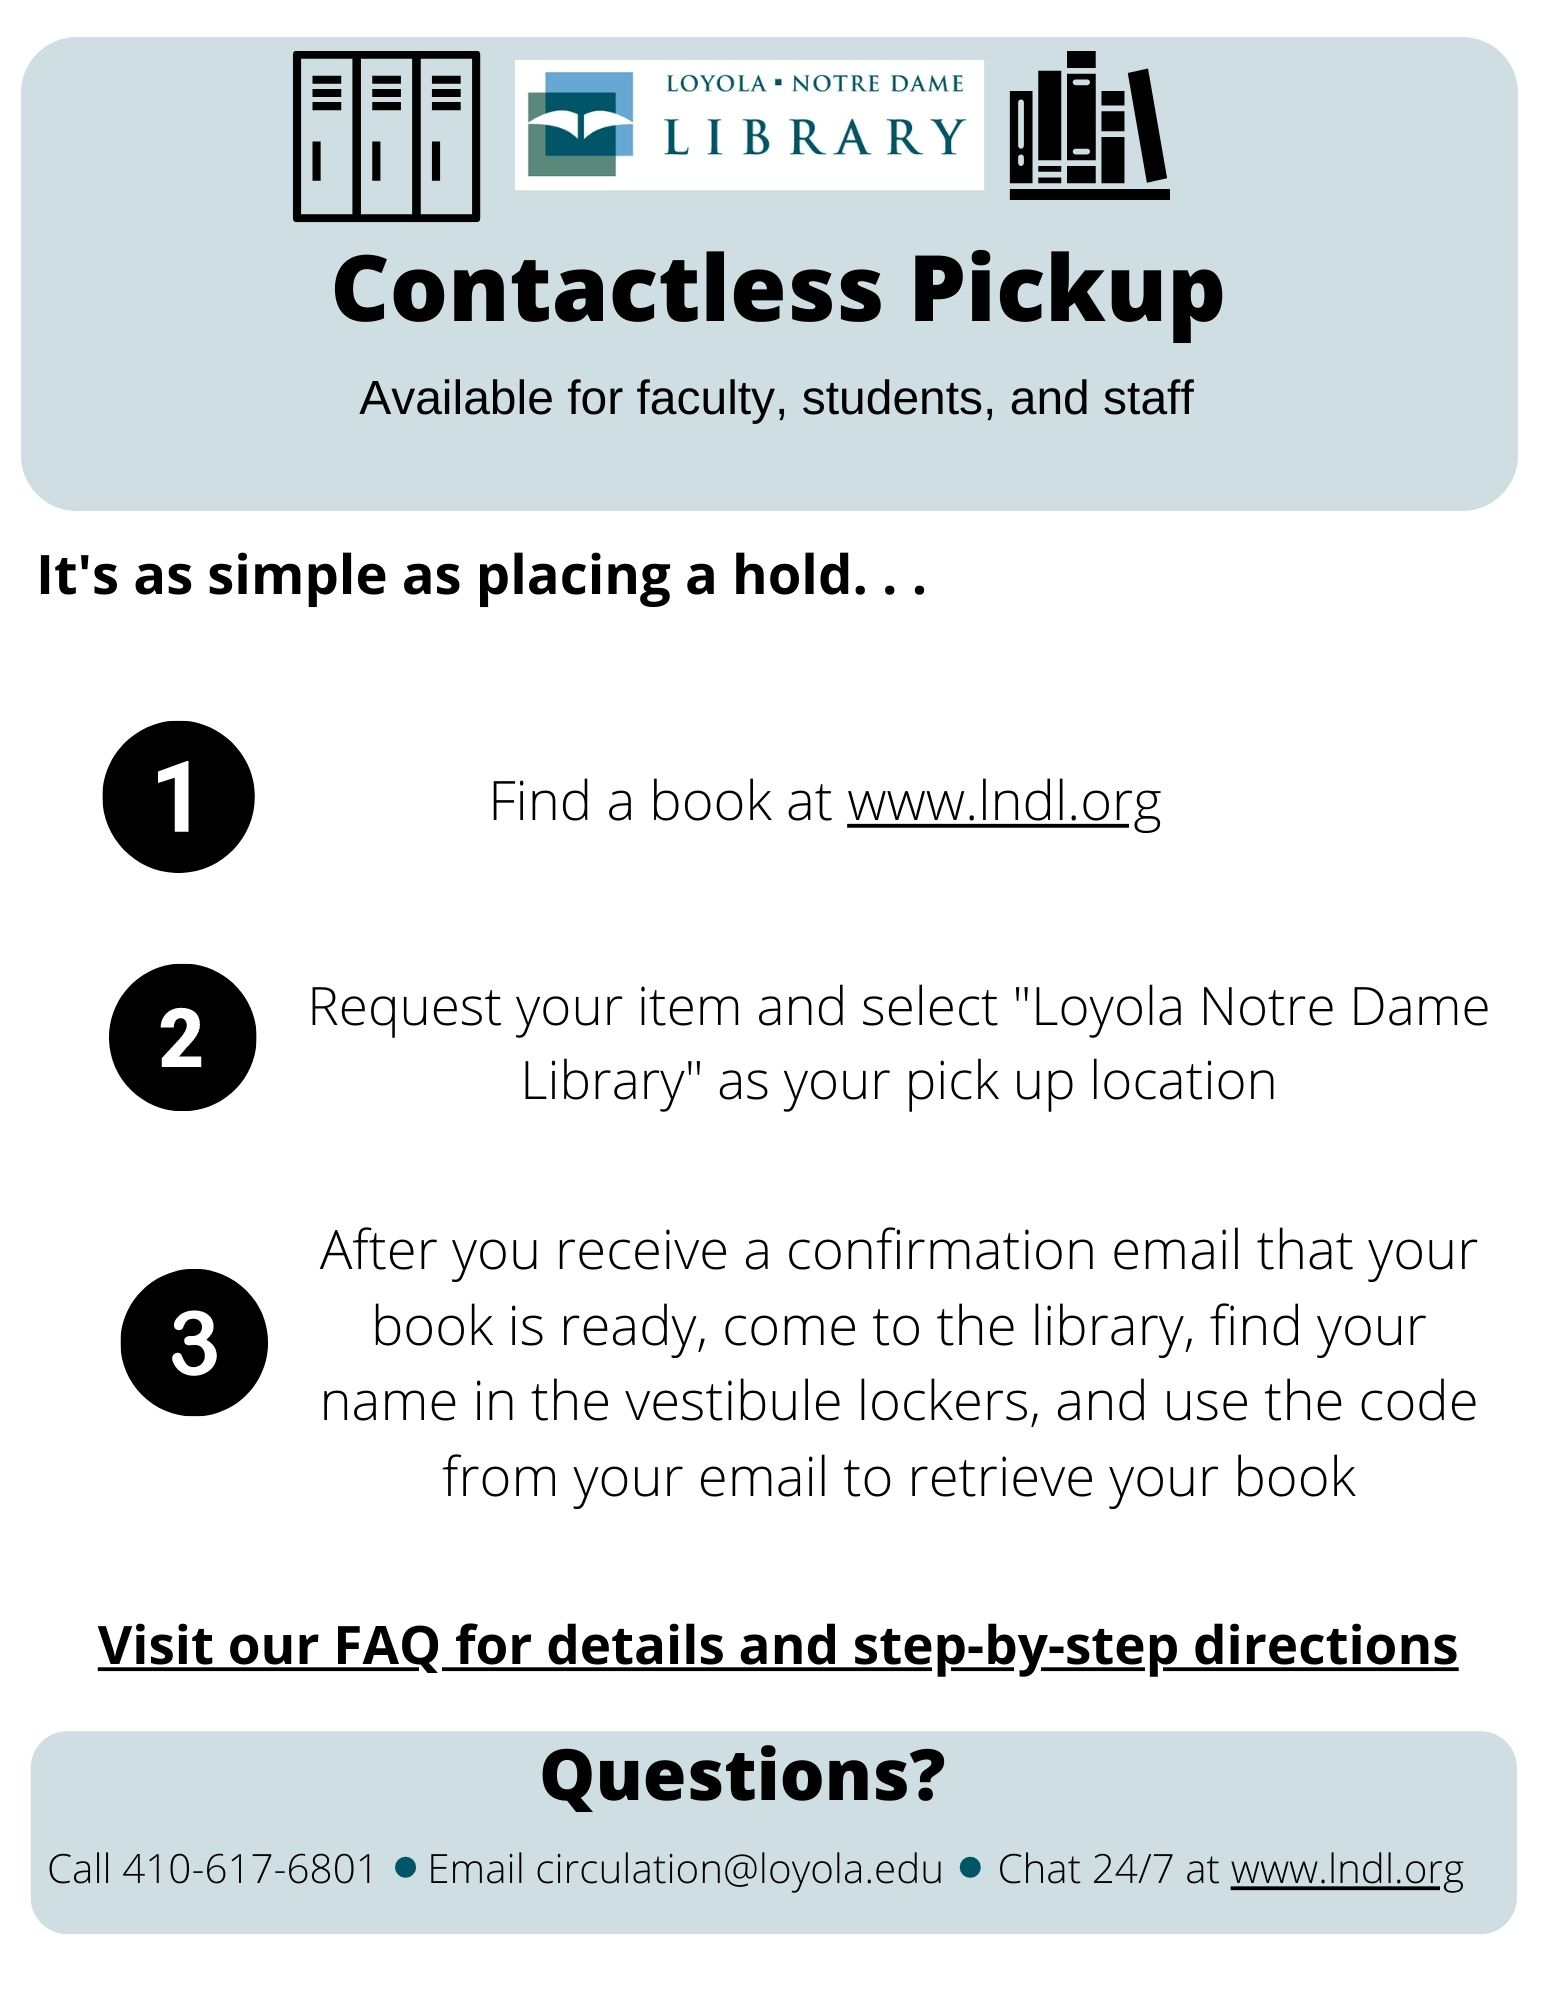 Contactless pickup available for faculty, students, and staff. Find a book at lndl.org. Select Loyola Notre Dame Library as pick up location. Receive a confirmation email that your book is ready. Find your book in the lockers and use the code to retrieve your book. Questions contact 410-617-6872 or circulation@loyola.edu